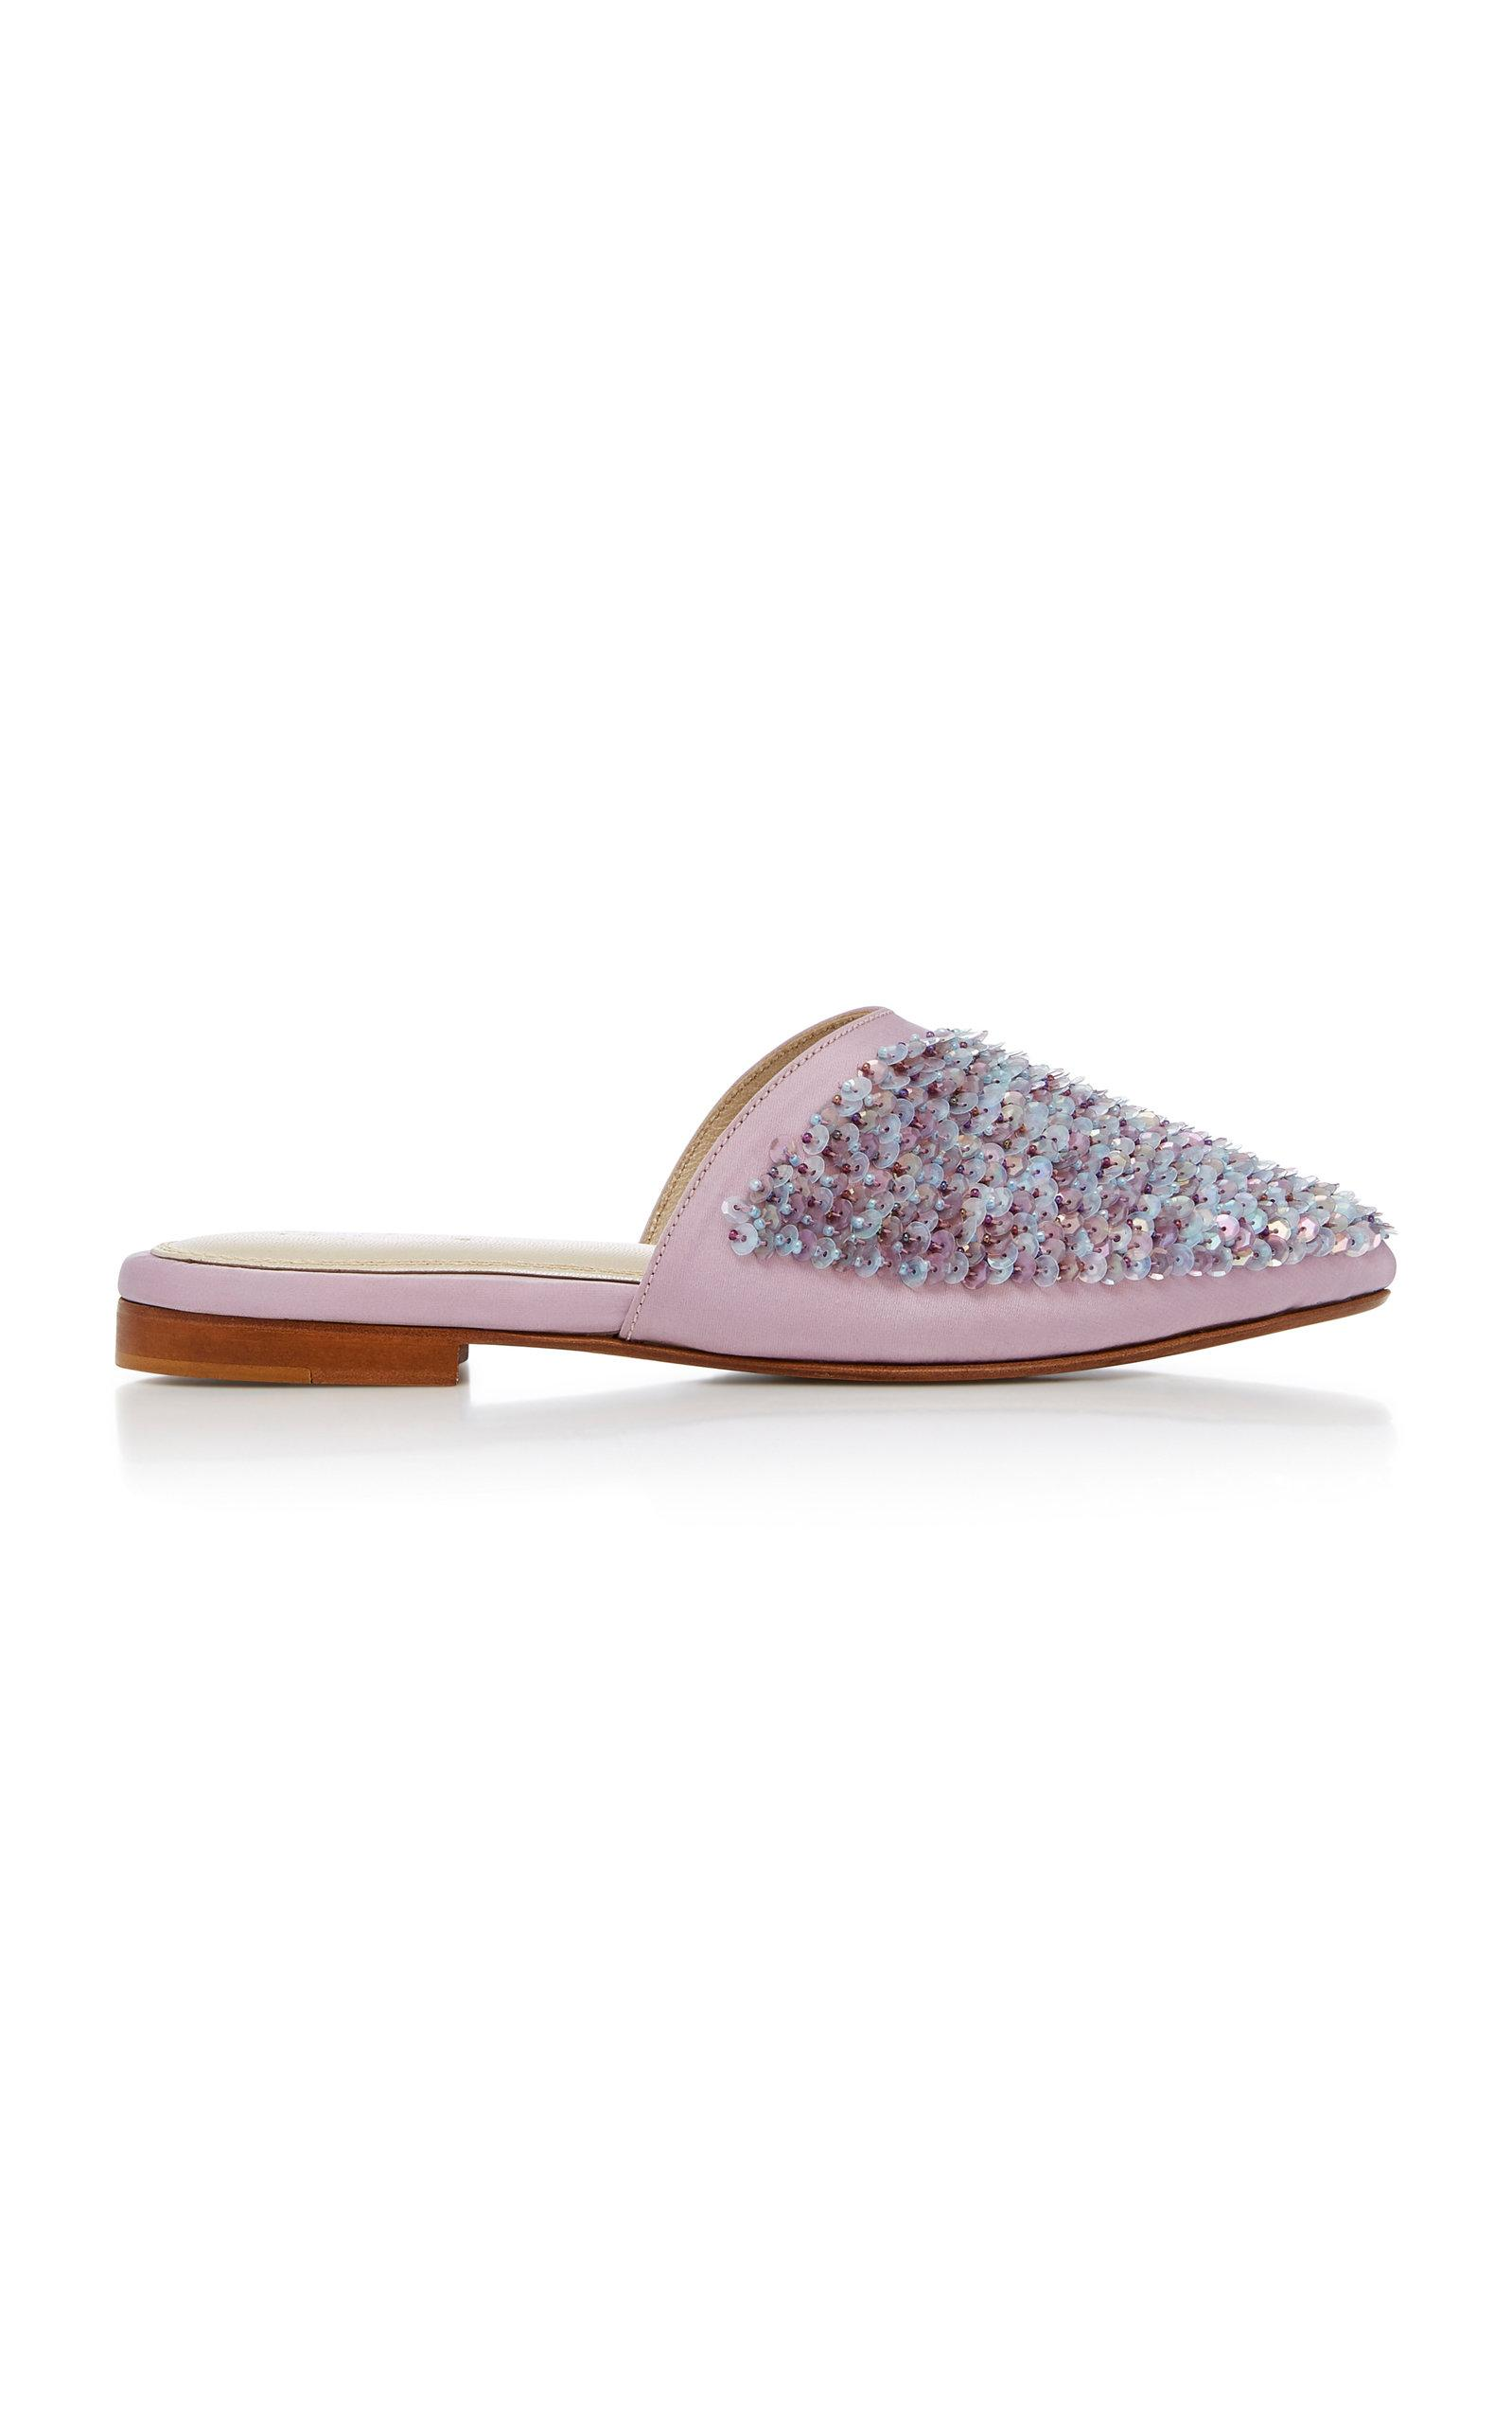 Zyne Jupiter Pastel Slipper In Silver